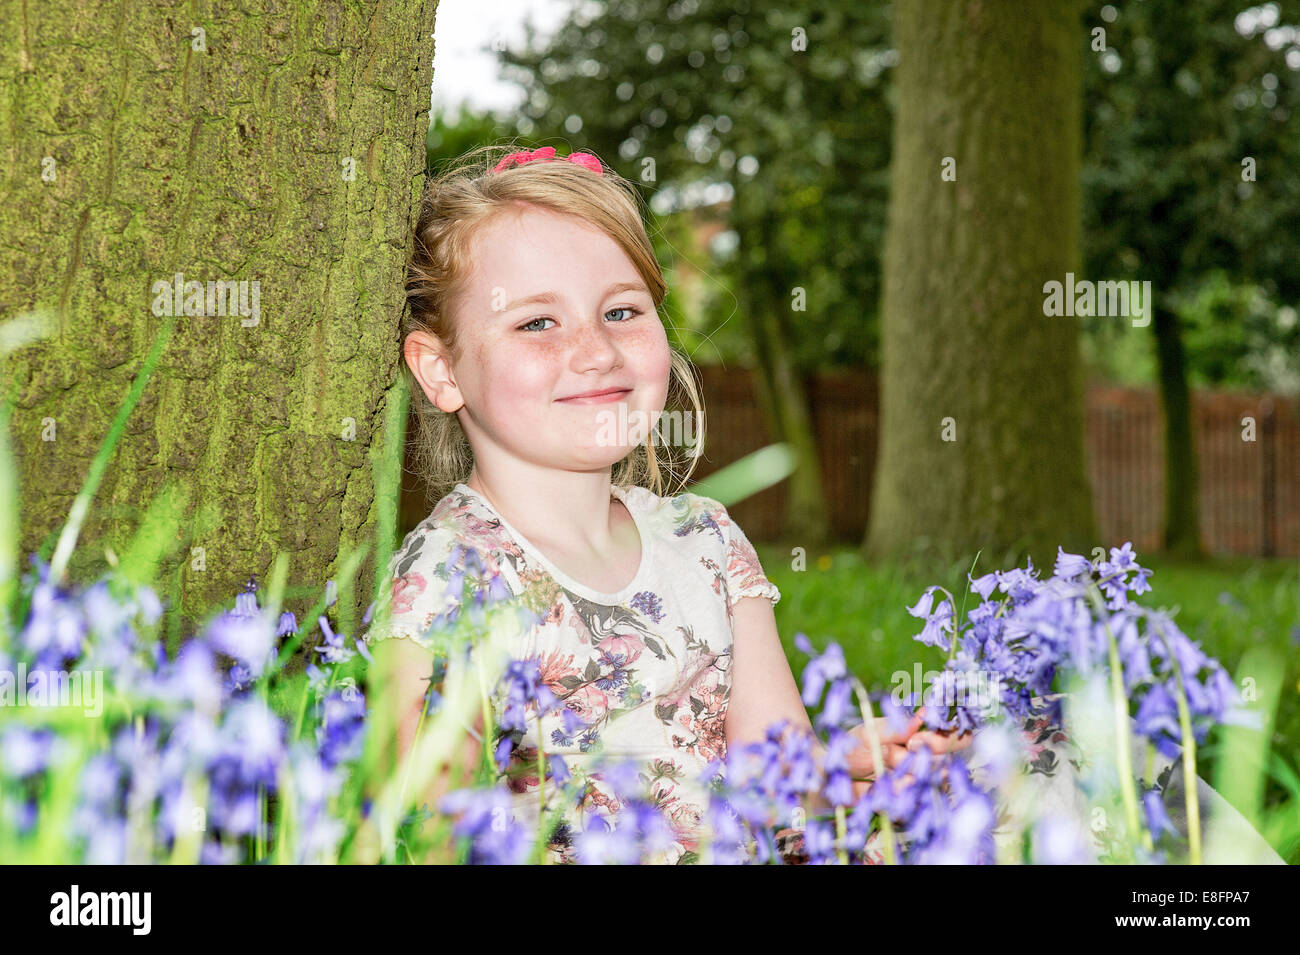 United Kingdom, UK, West Midlands, Warwickshire, Rugby, Portrait of girl (8-9) smiling among flowers - Stock Image